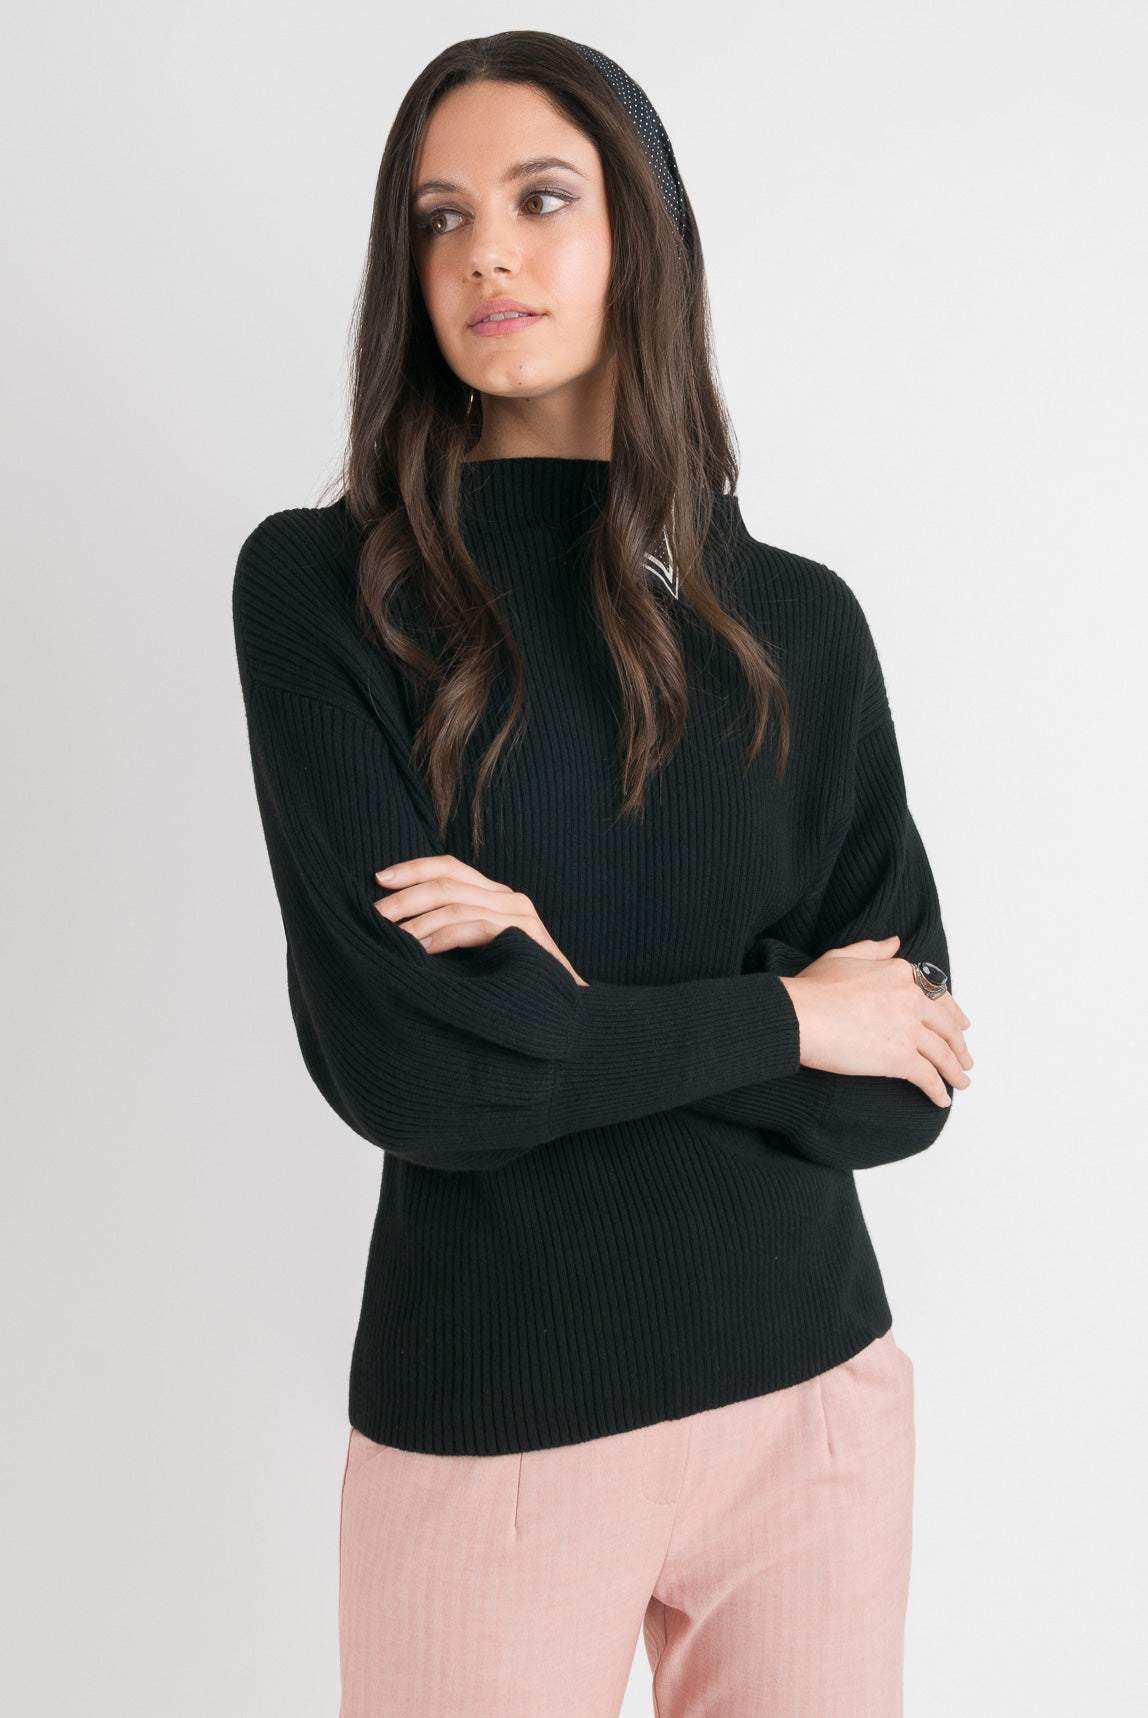 Blouson Sleeve Sweater - Black